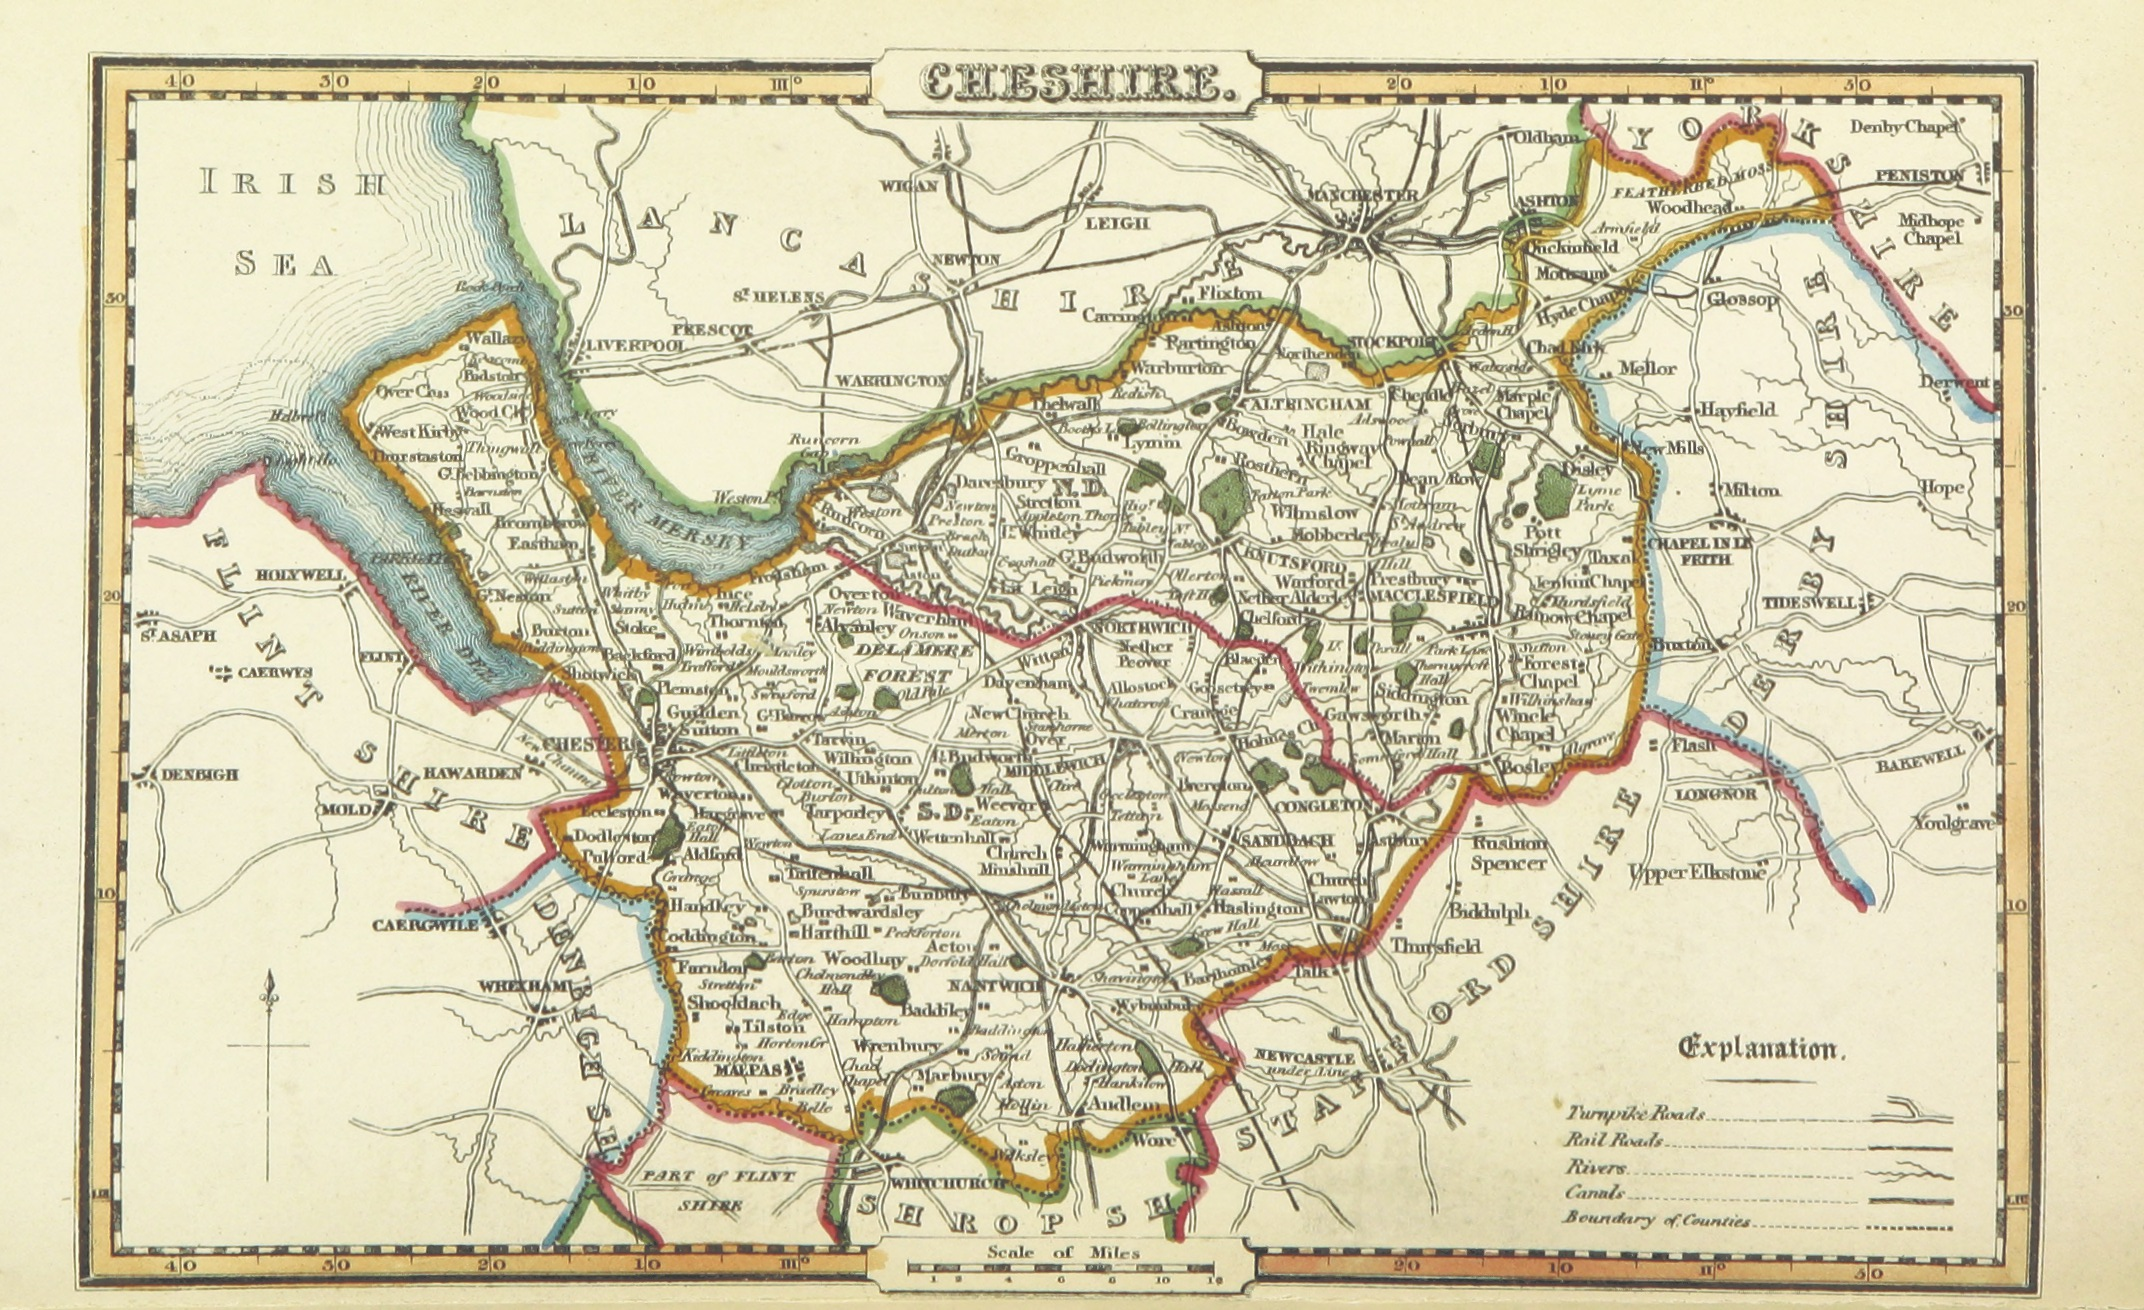 File Pigot And Co 1842 P2 018 Map Of Cheshire Jpg Wikimedia